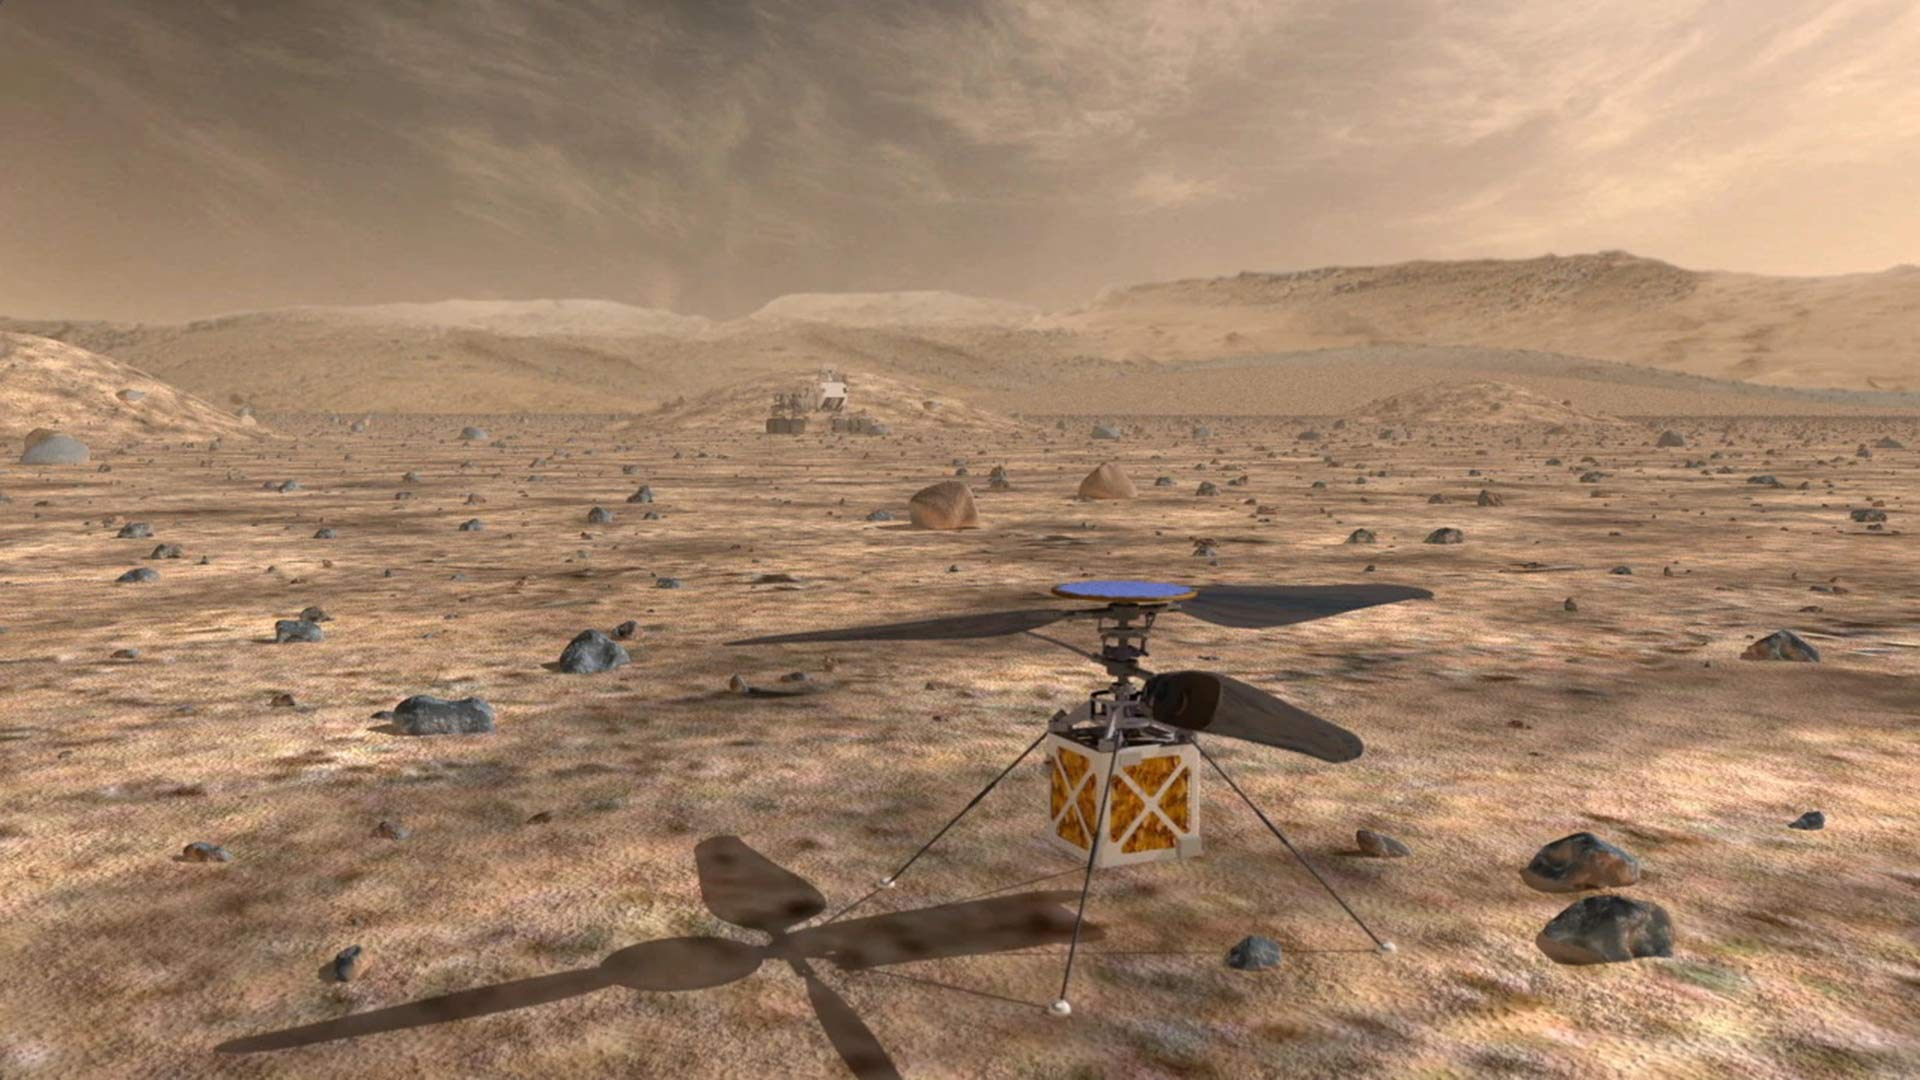 A helicopter drone could triple the distances that Mars rovers can drive in a Martian day and help pinpoint interesting targets for study.